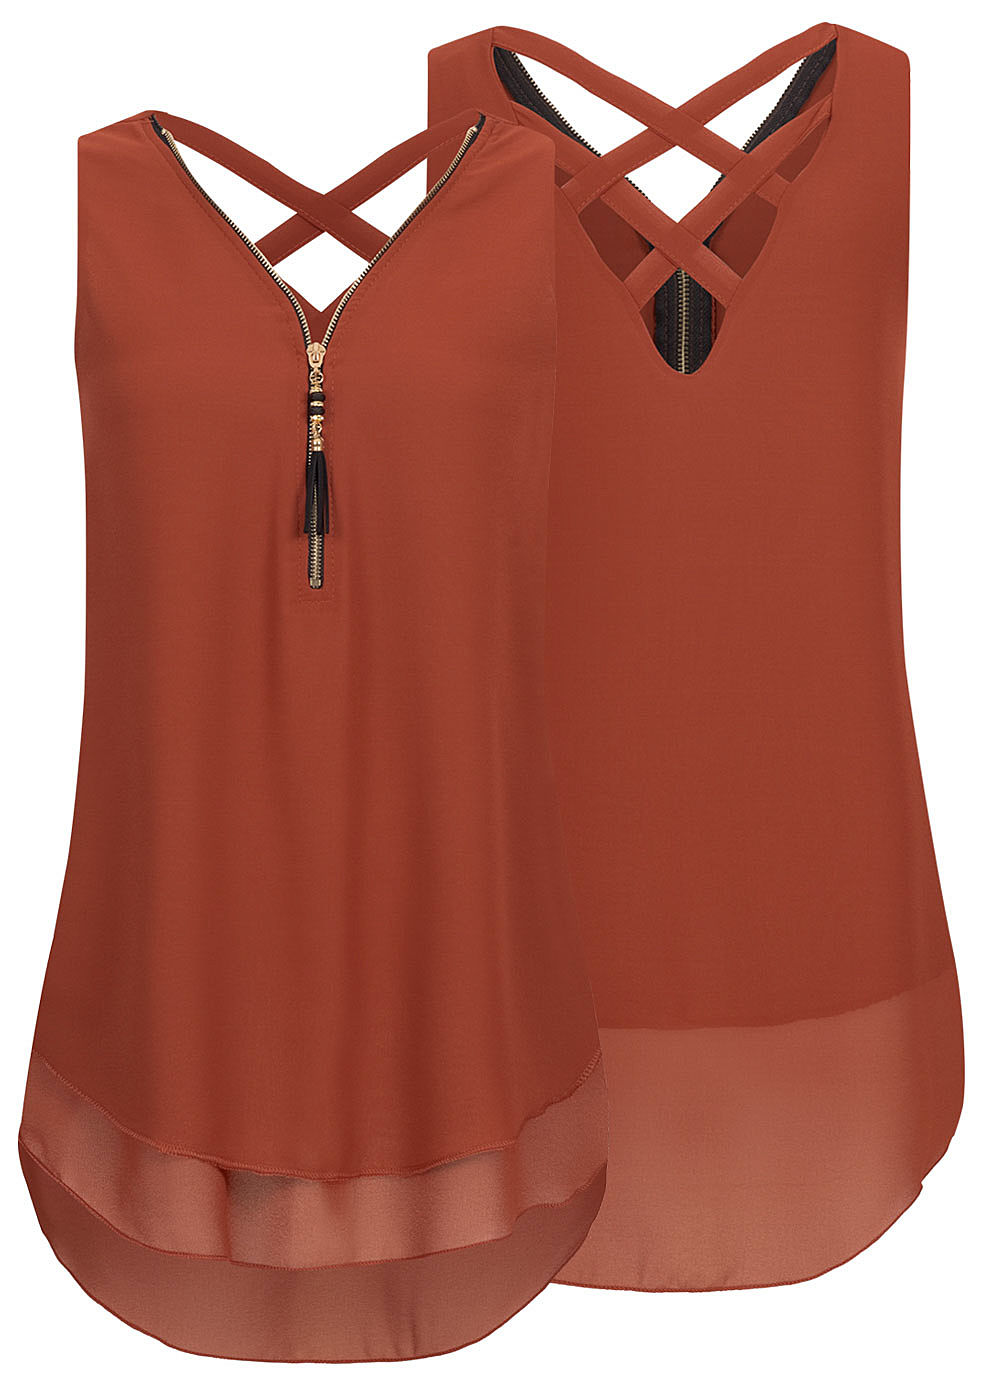 Styleboom Fashion Damen Chiffon Top Zipper 2-lagig caramel braun - Art.-Nr.: 19106815-L-BR